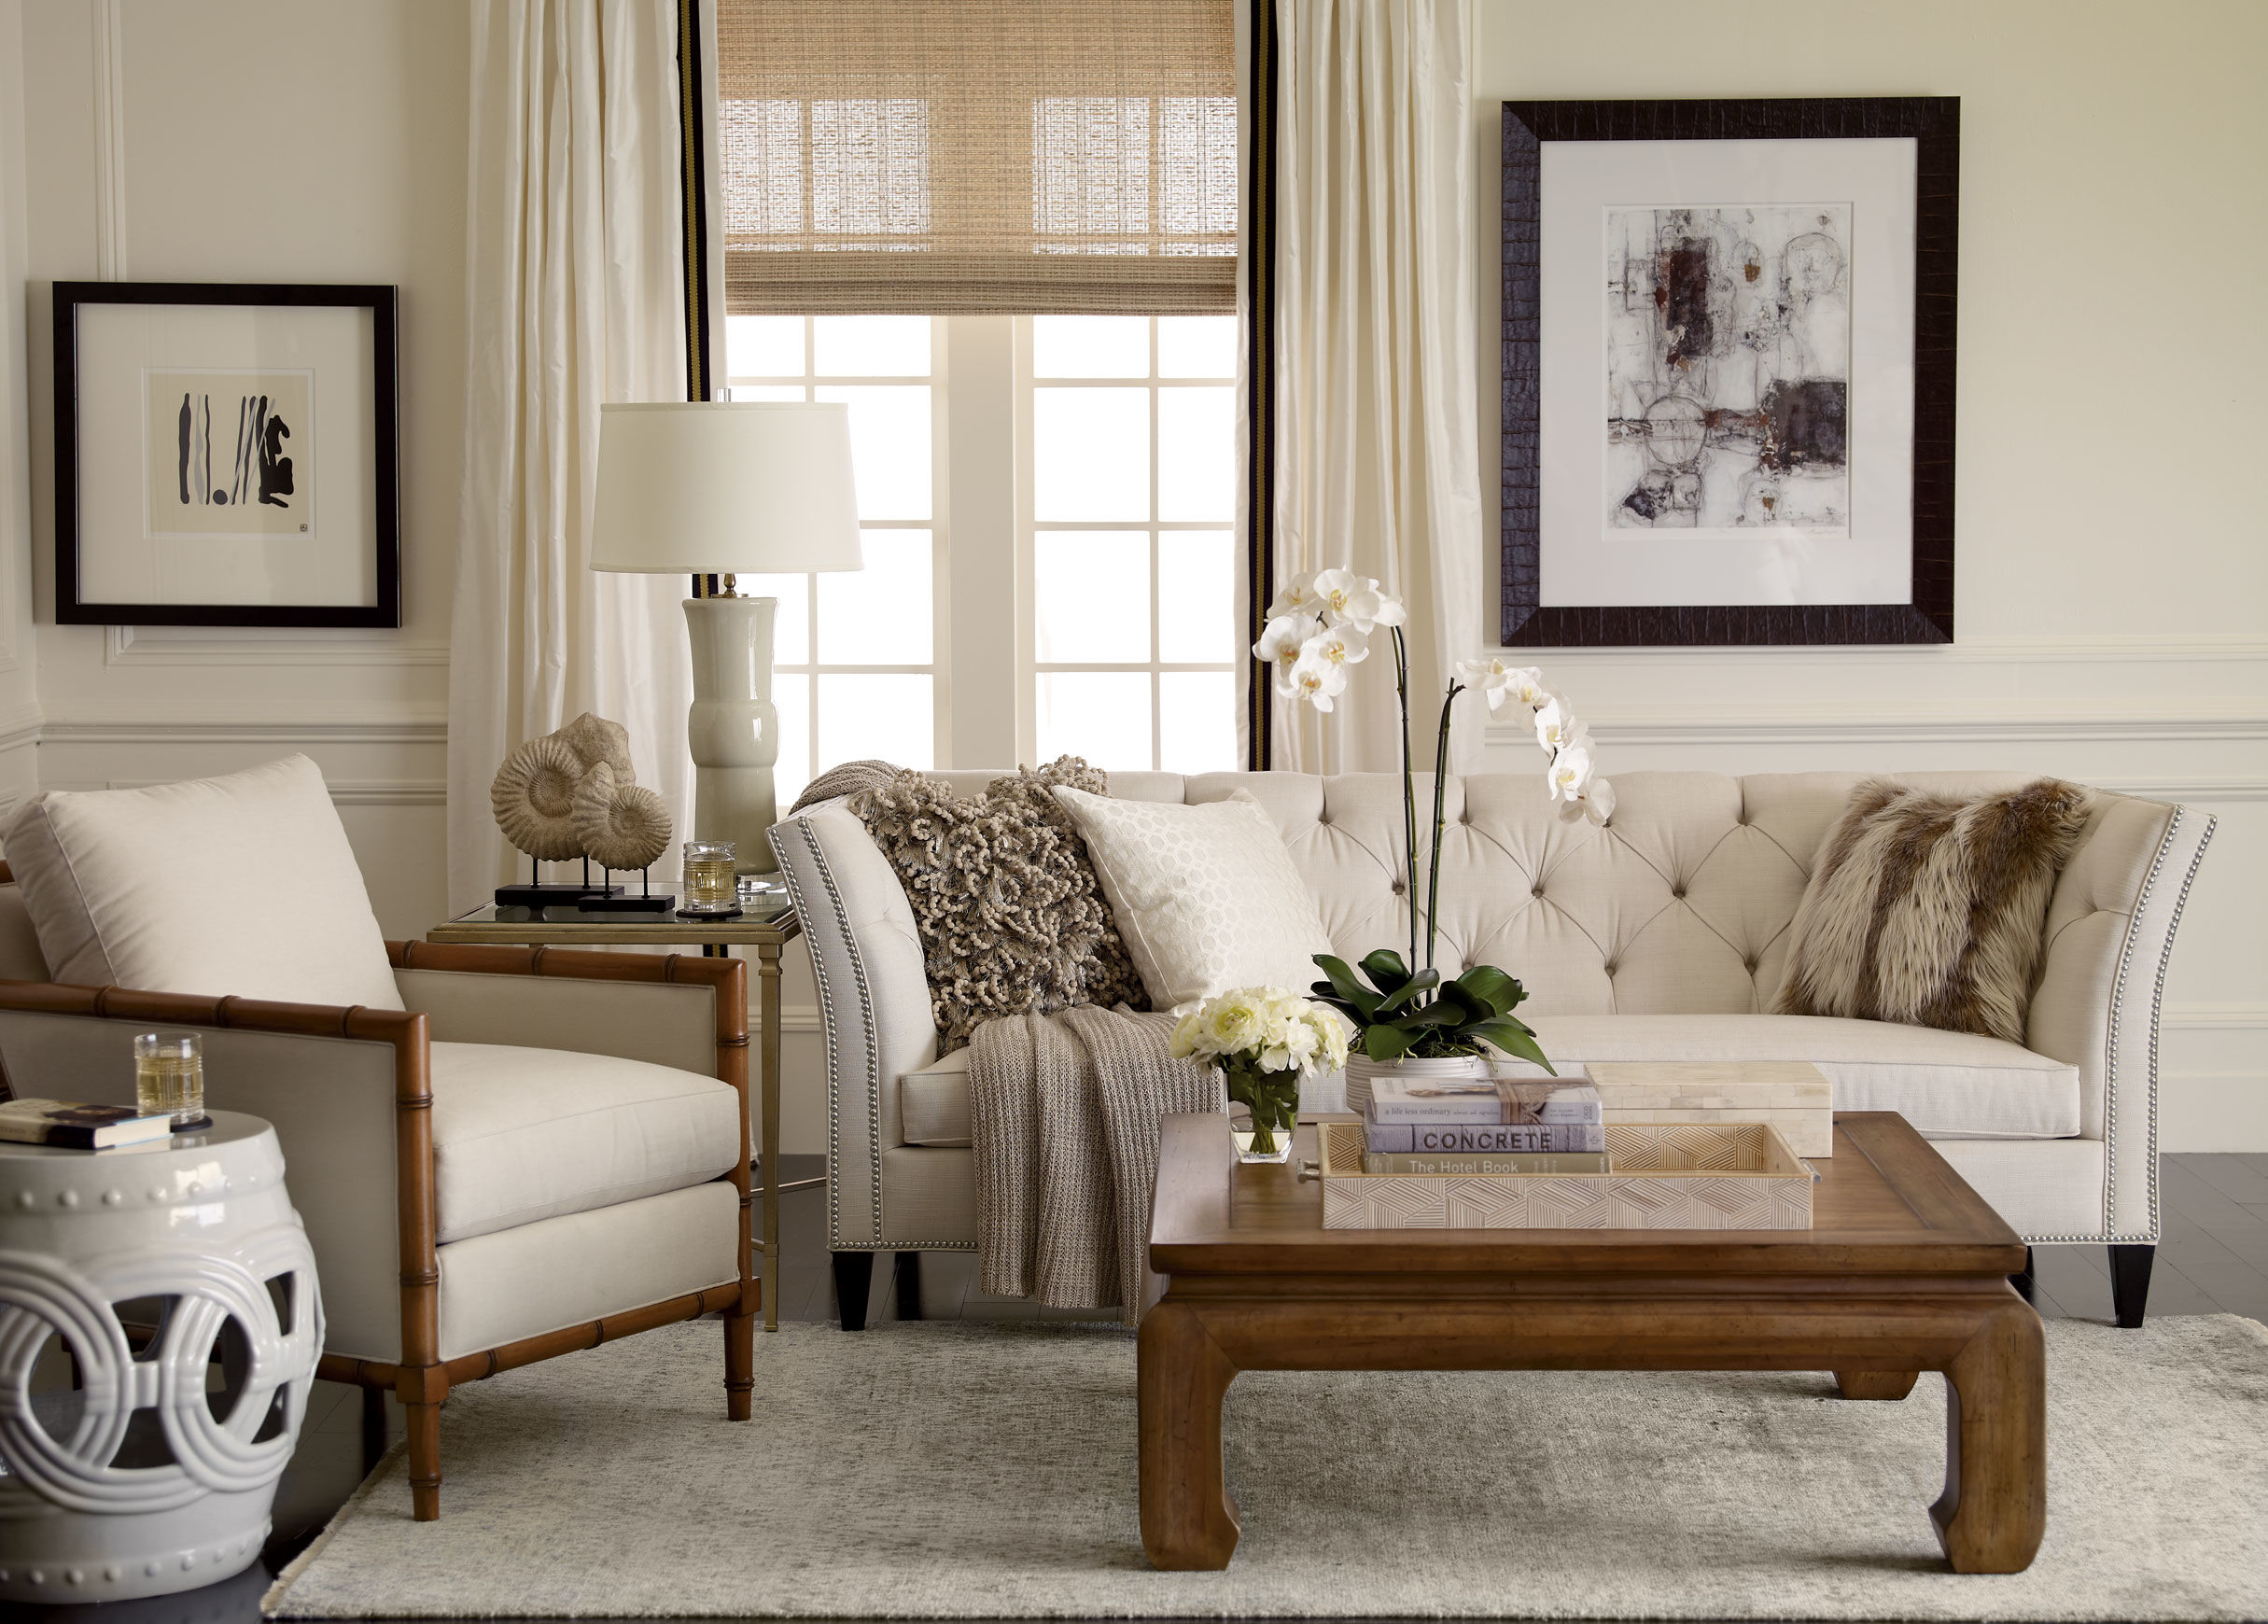 Attirant Classy Modern Living Room Ideas With White Tufted Sofa And Cozy Armchair  Plus Soft Rug Area. Ethan Allen Leather Furniture ...